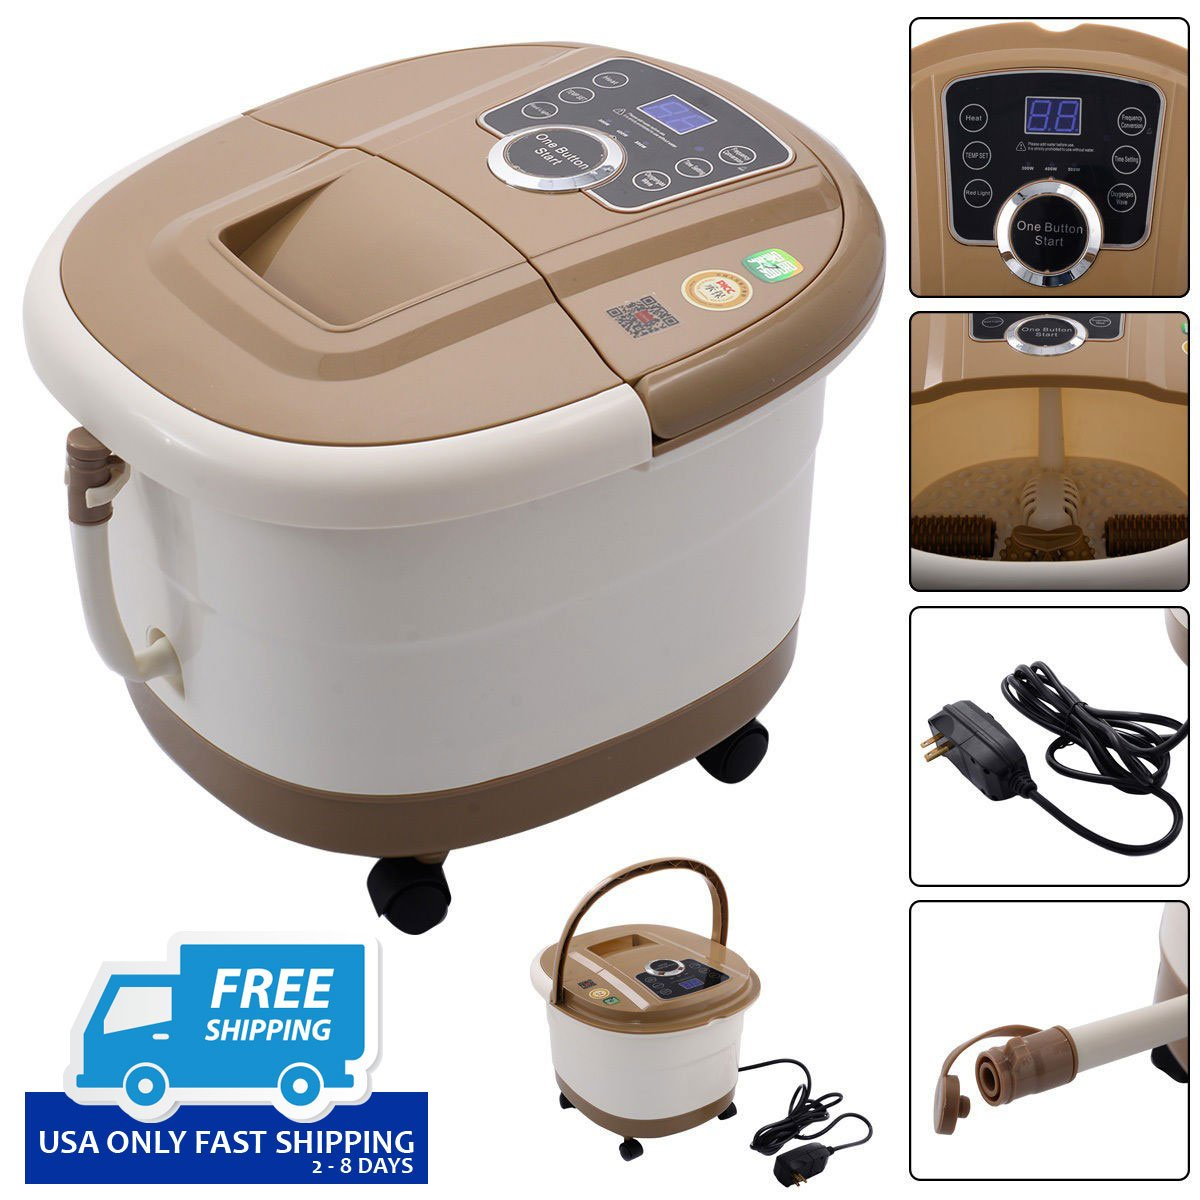 Portable Spa Bath Foot Massager with LED Display – By Choice Products